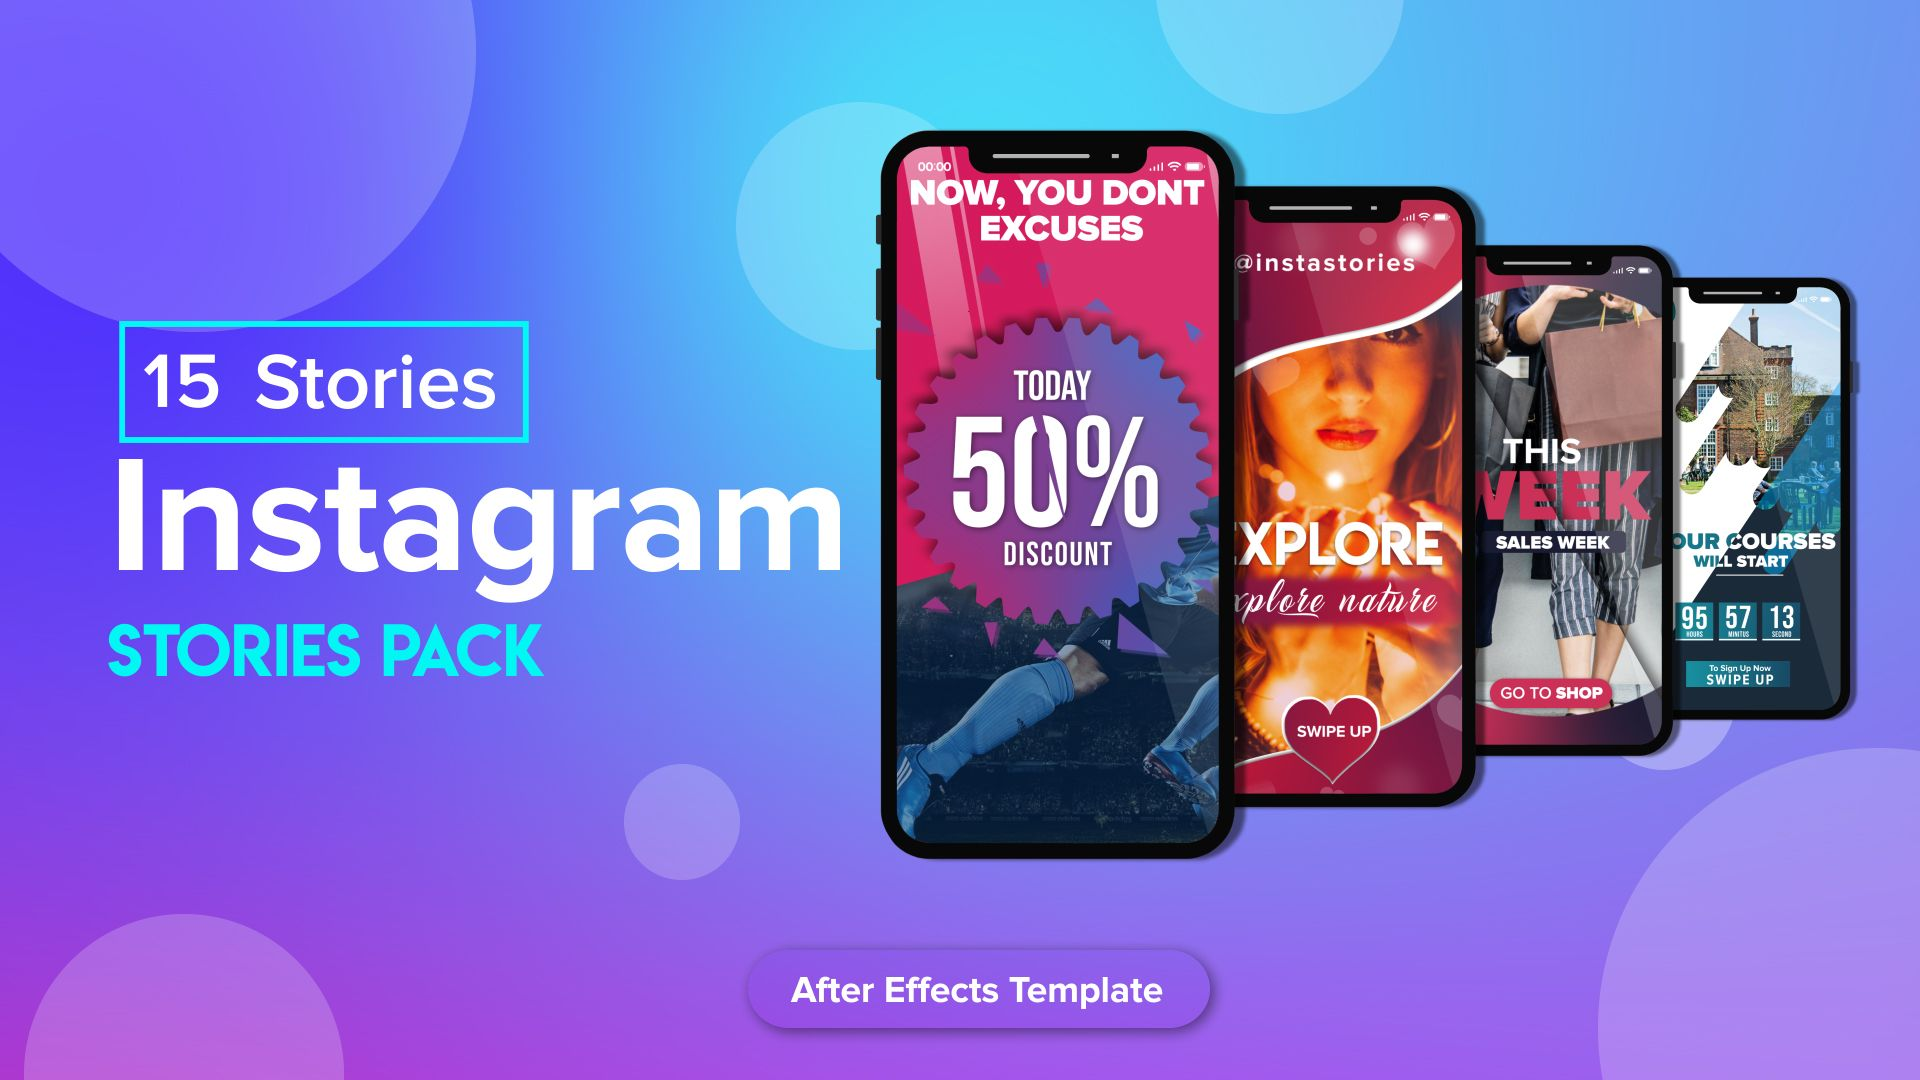 Instagram Stories Instagram Story Template Instagram Story Instagram